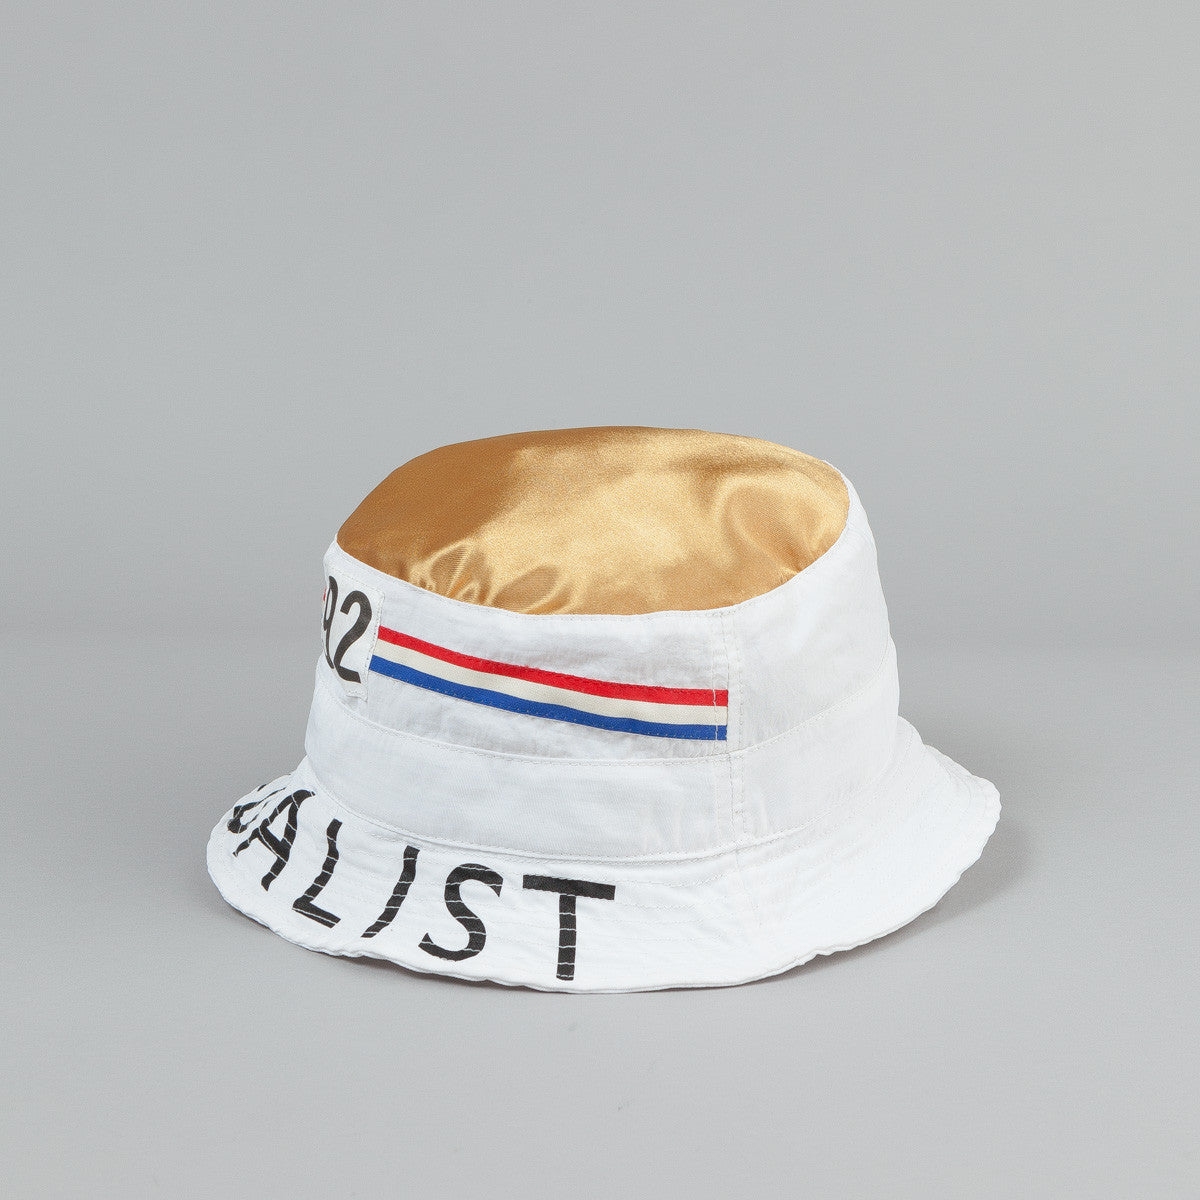 The Decades Gold Medalist Bucket Hat